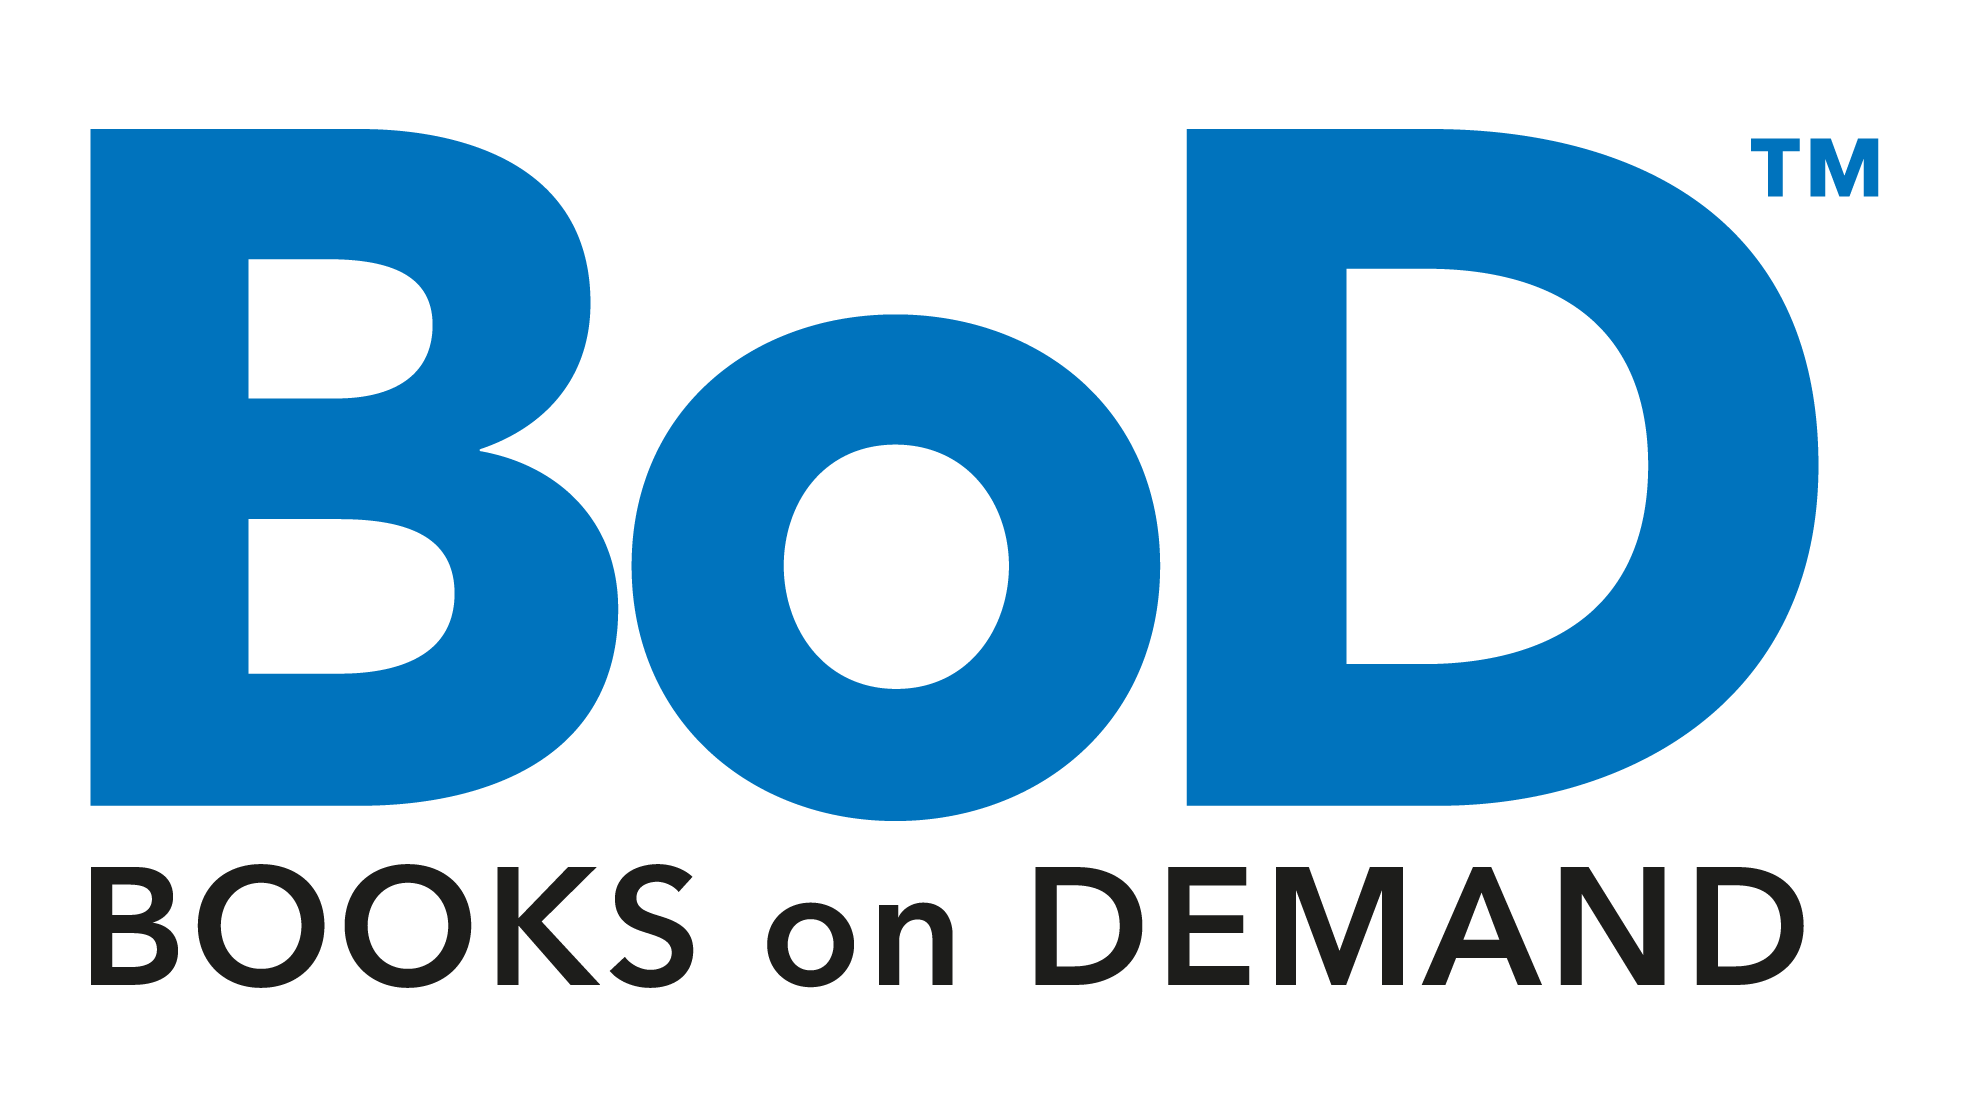 Books on Demand